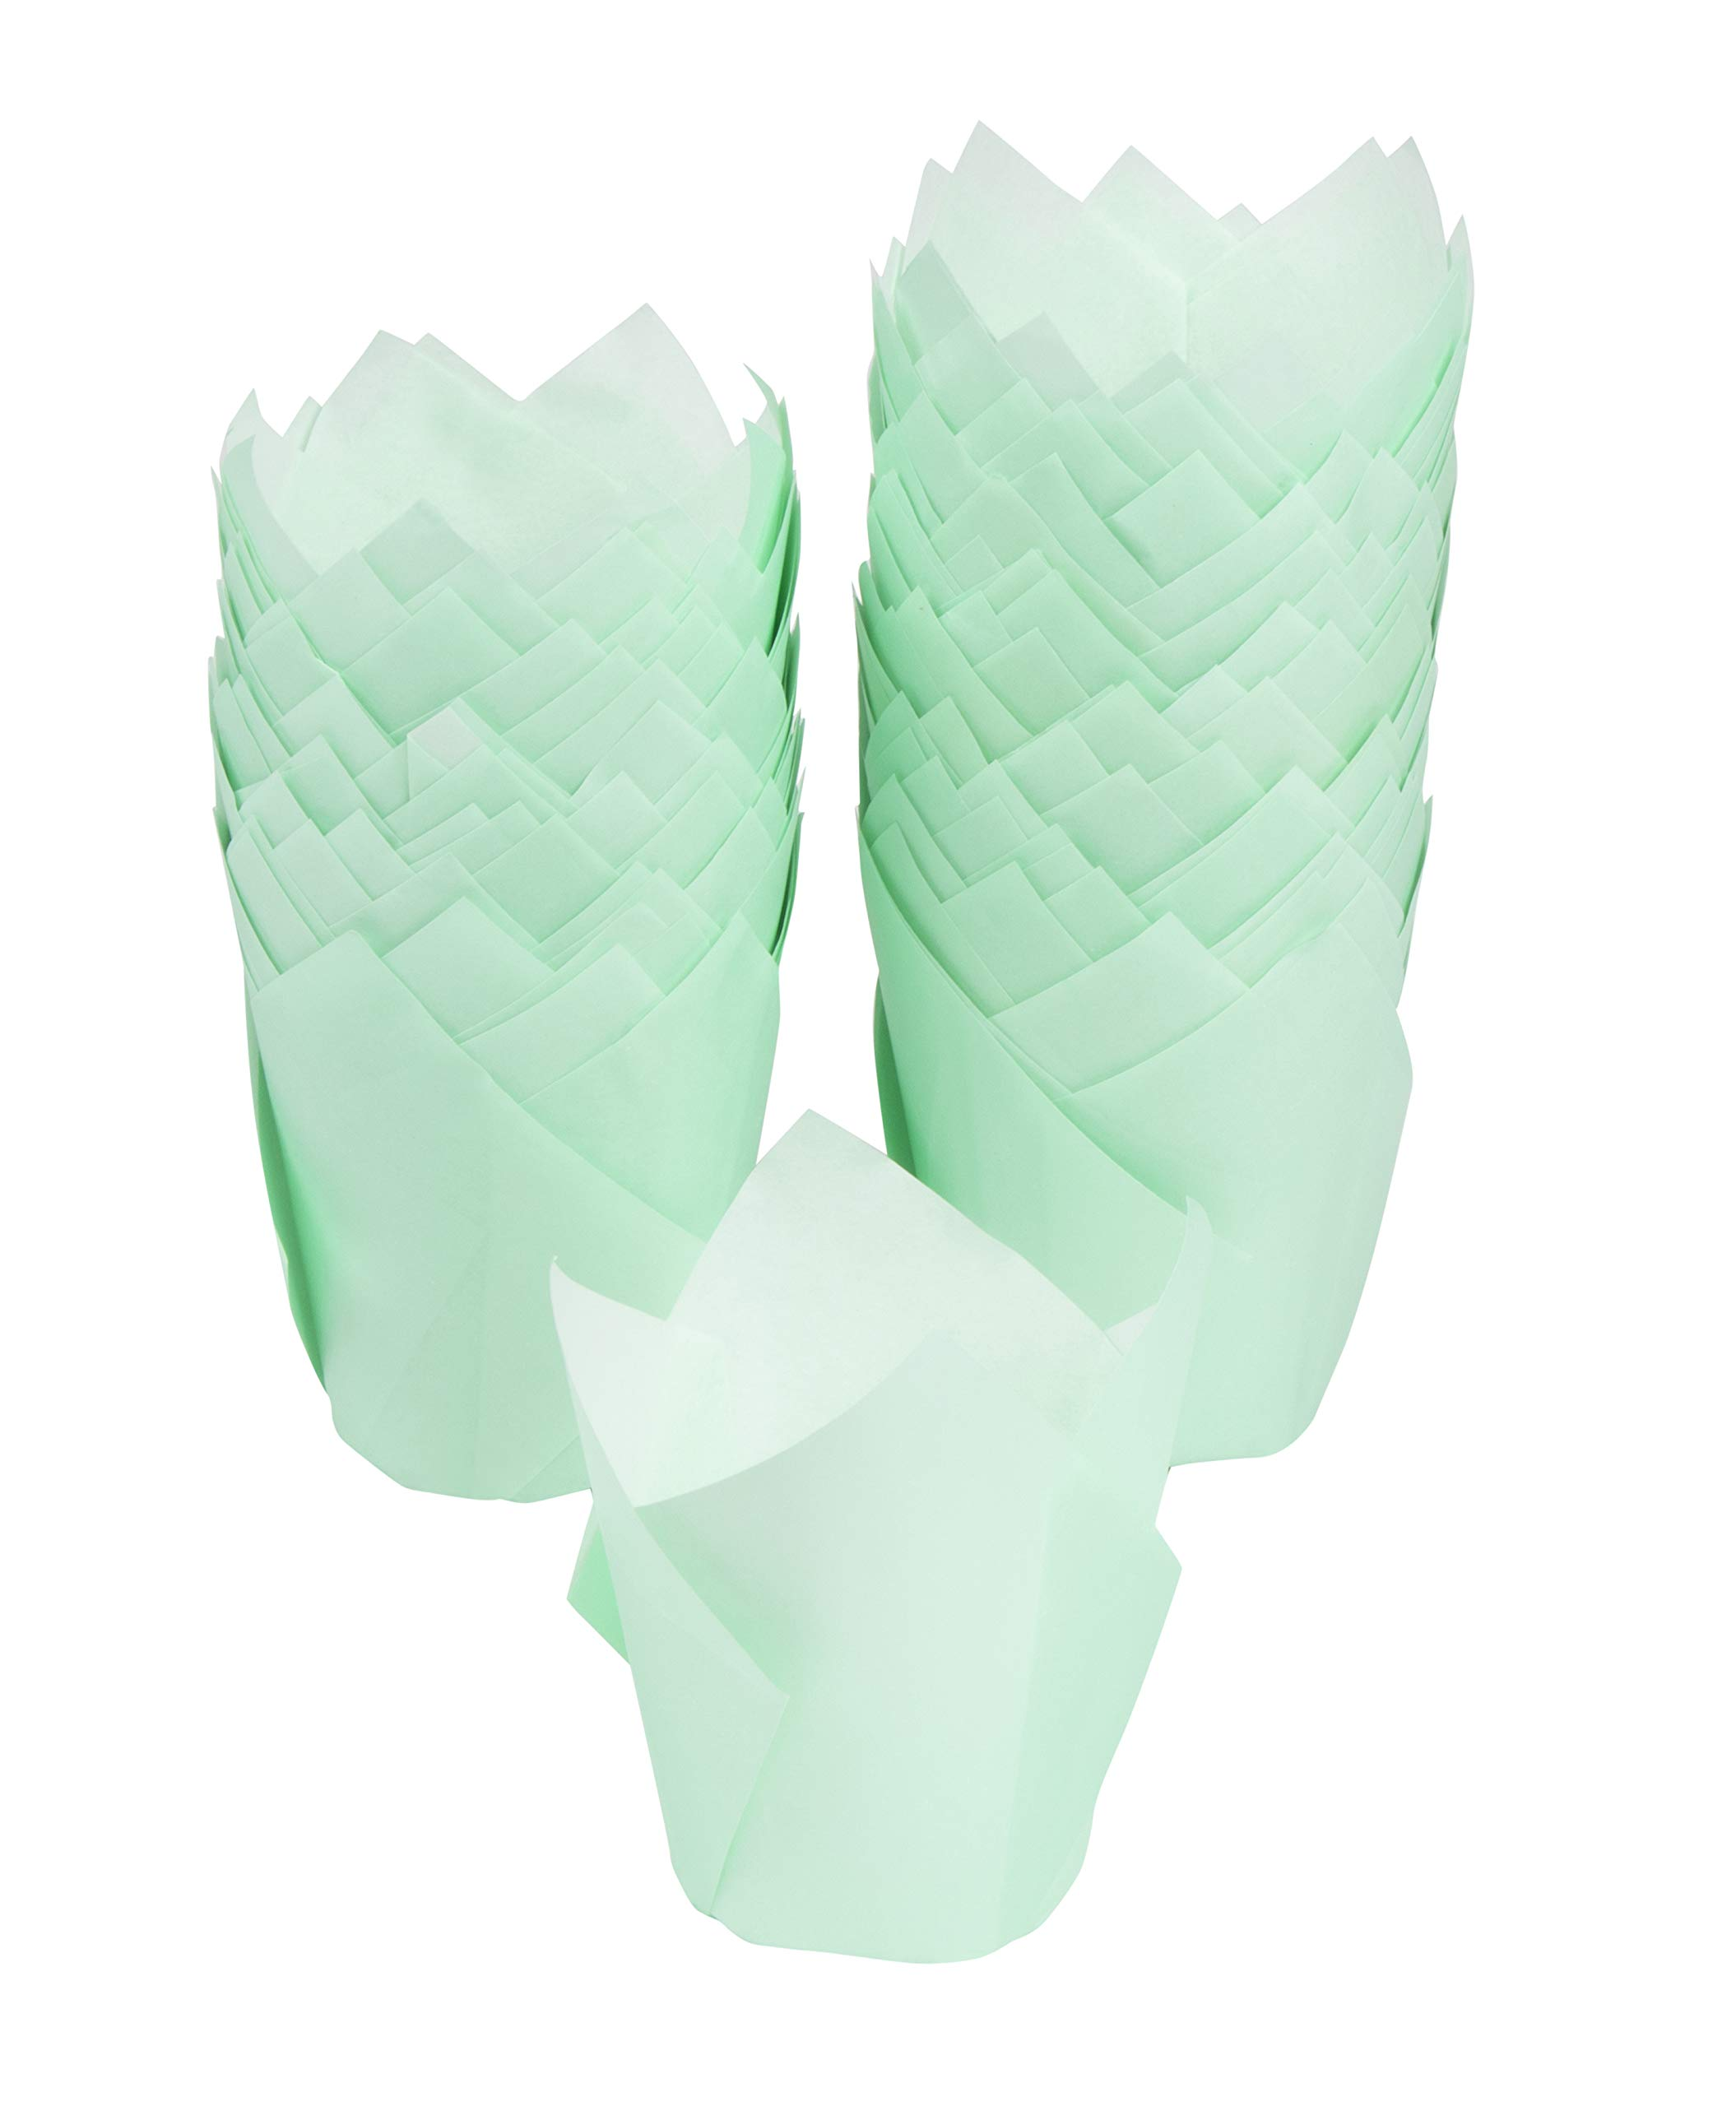 Tulip Cupcake Liners - 300-Pack Medium Baking Cups, Muffin Wrappers, Perfect for Birthday Parties, Weddings, Baby Showers, Bakeries, Catering, Restaurants, Mint Green